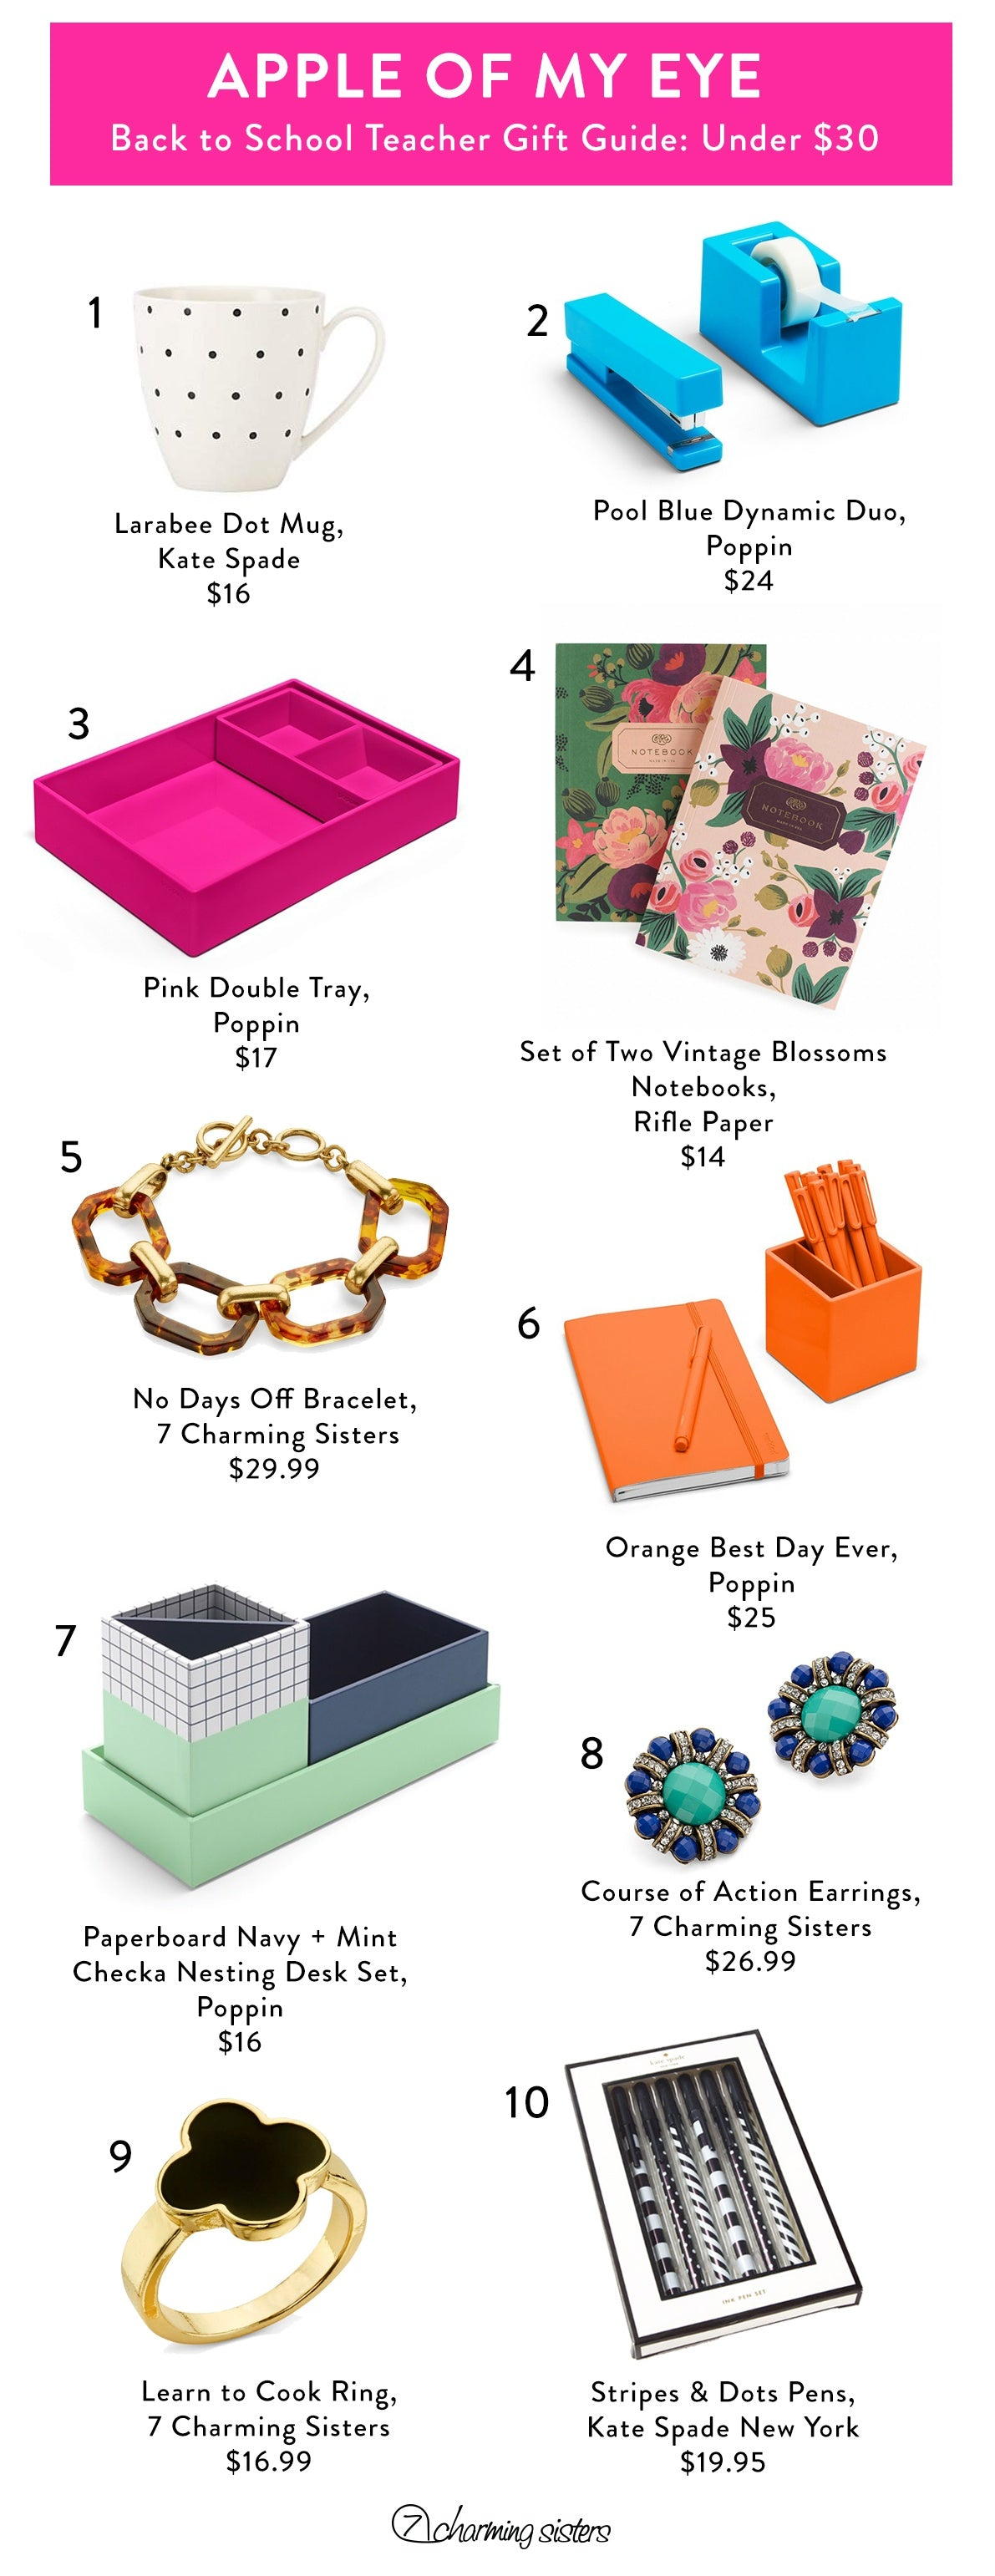 Back to School: Teacher Gift Guide